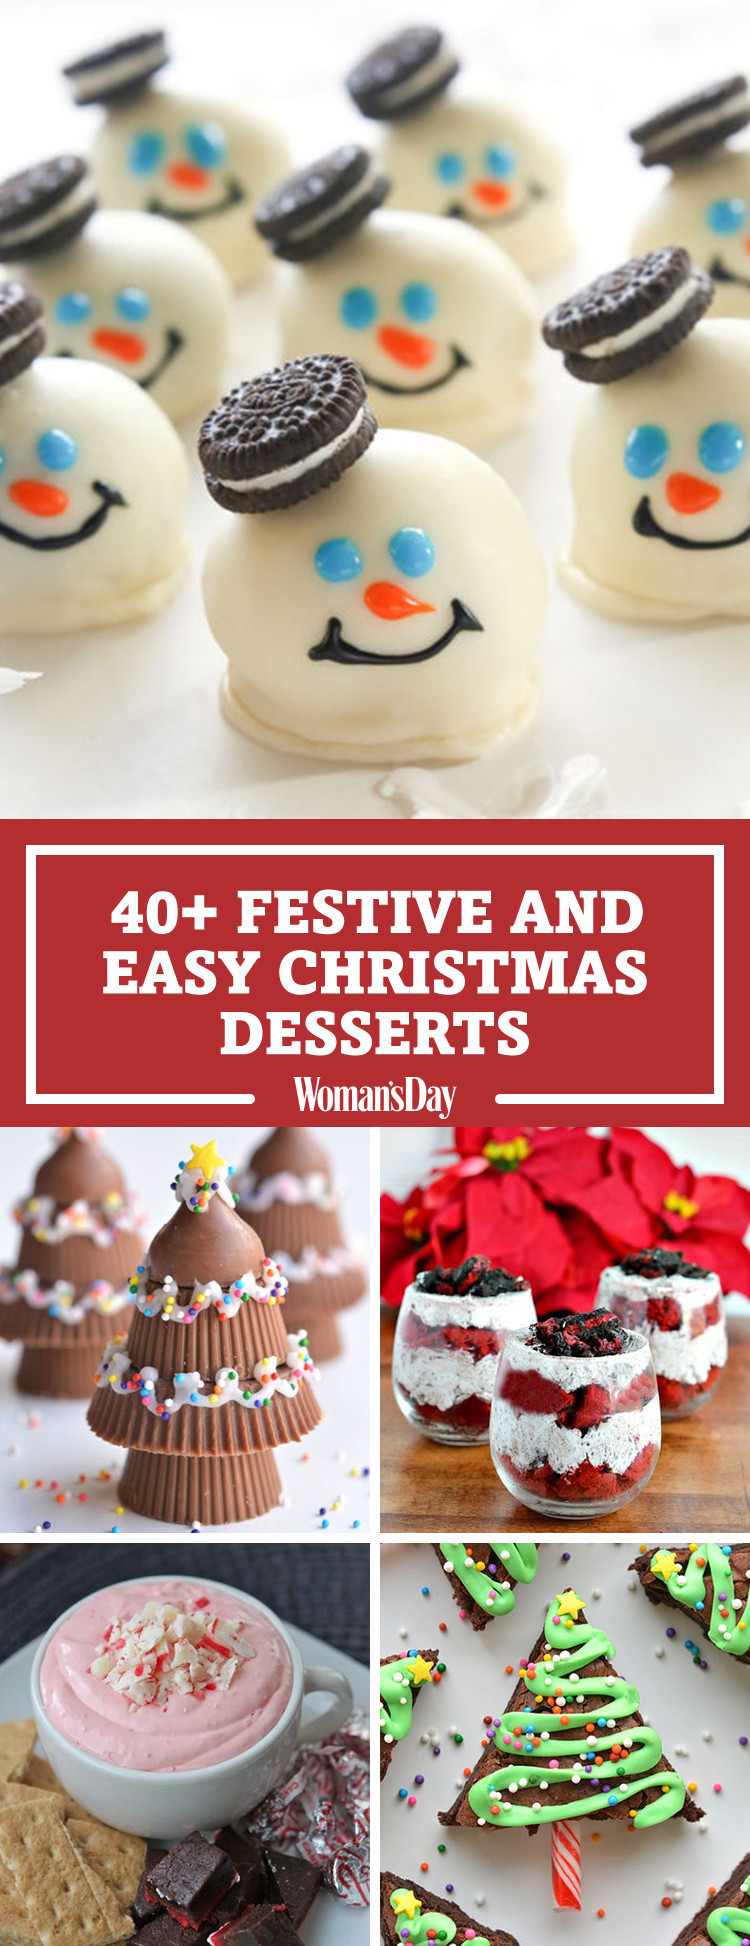 Desserts To Make For Christmas  57 Easy Christmas Dessert Recipes Best Ideas for Fun